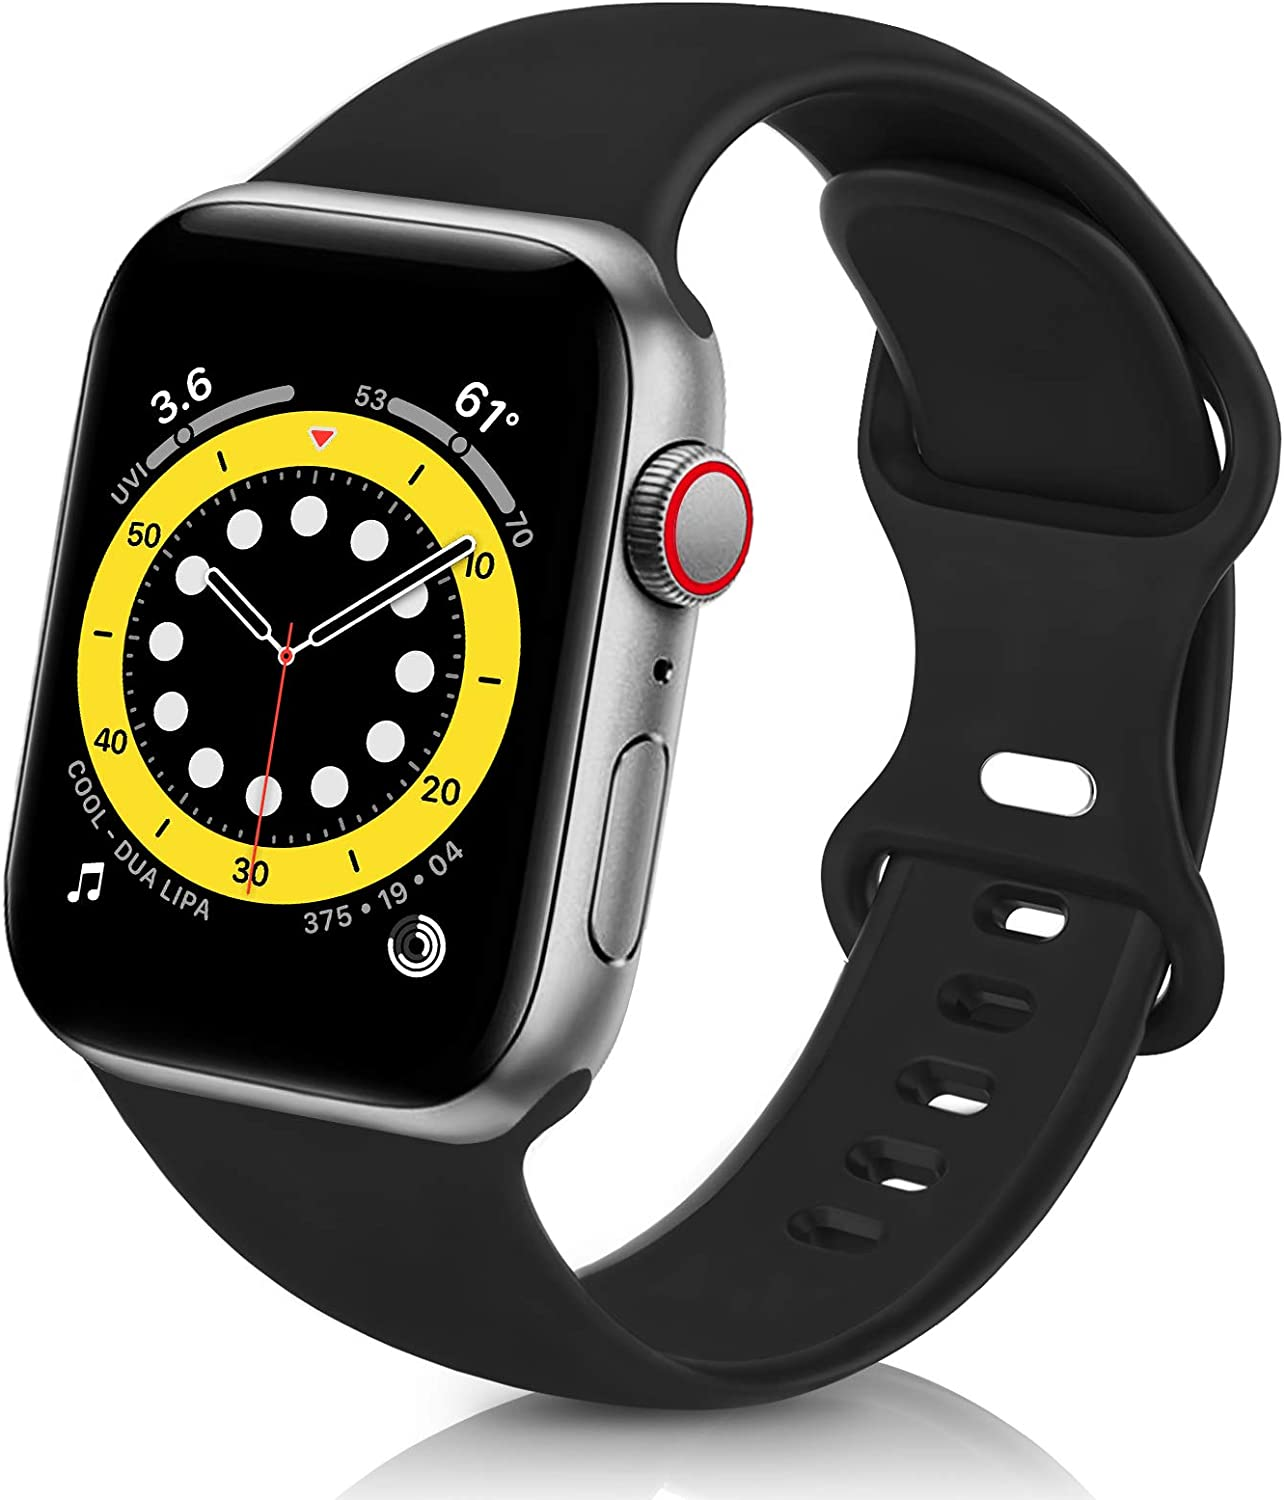 ZALAVER Bands Compatible with Apple Watch Band 38mm 40mm 41mm 42mm 44mm 45mm, Soft Silicone Sport Replacement Band Compatible with iWatch Series 7 6 5 4 3 2 1 Women Men Black 38mm/40mm S/M